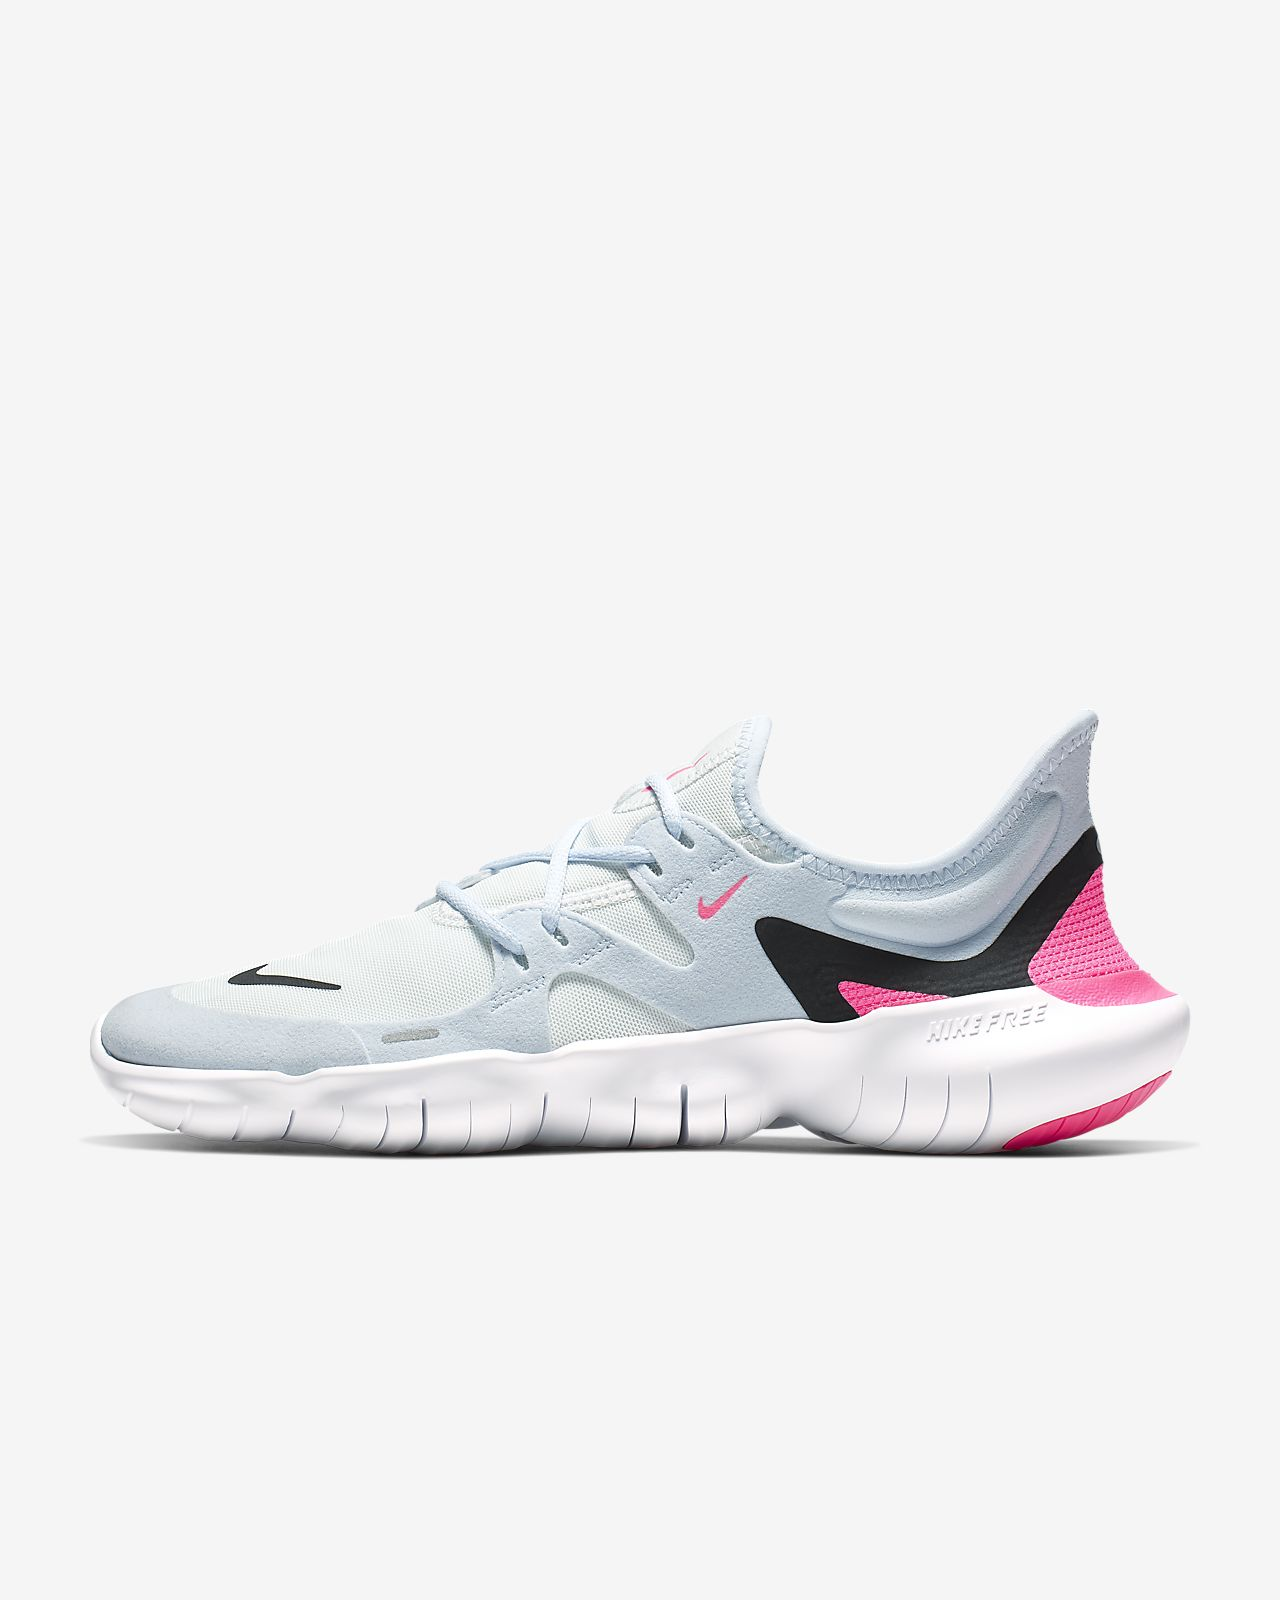 Nike women's free 5.0 v4 sail pink force running trainer